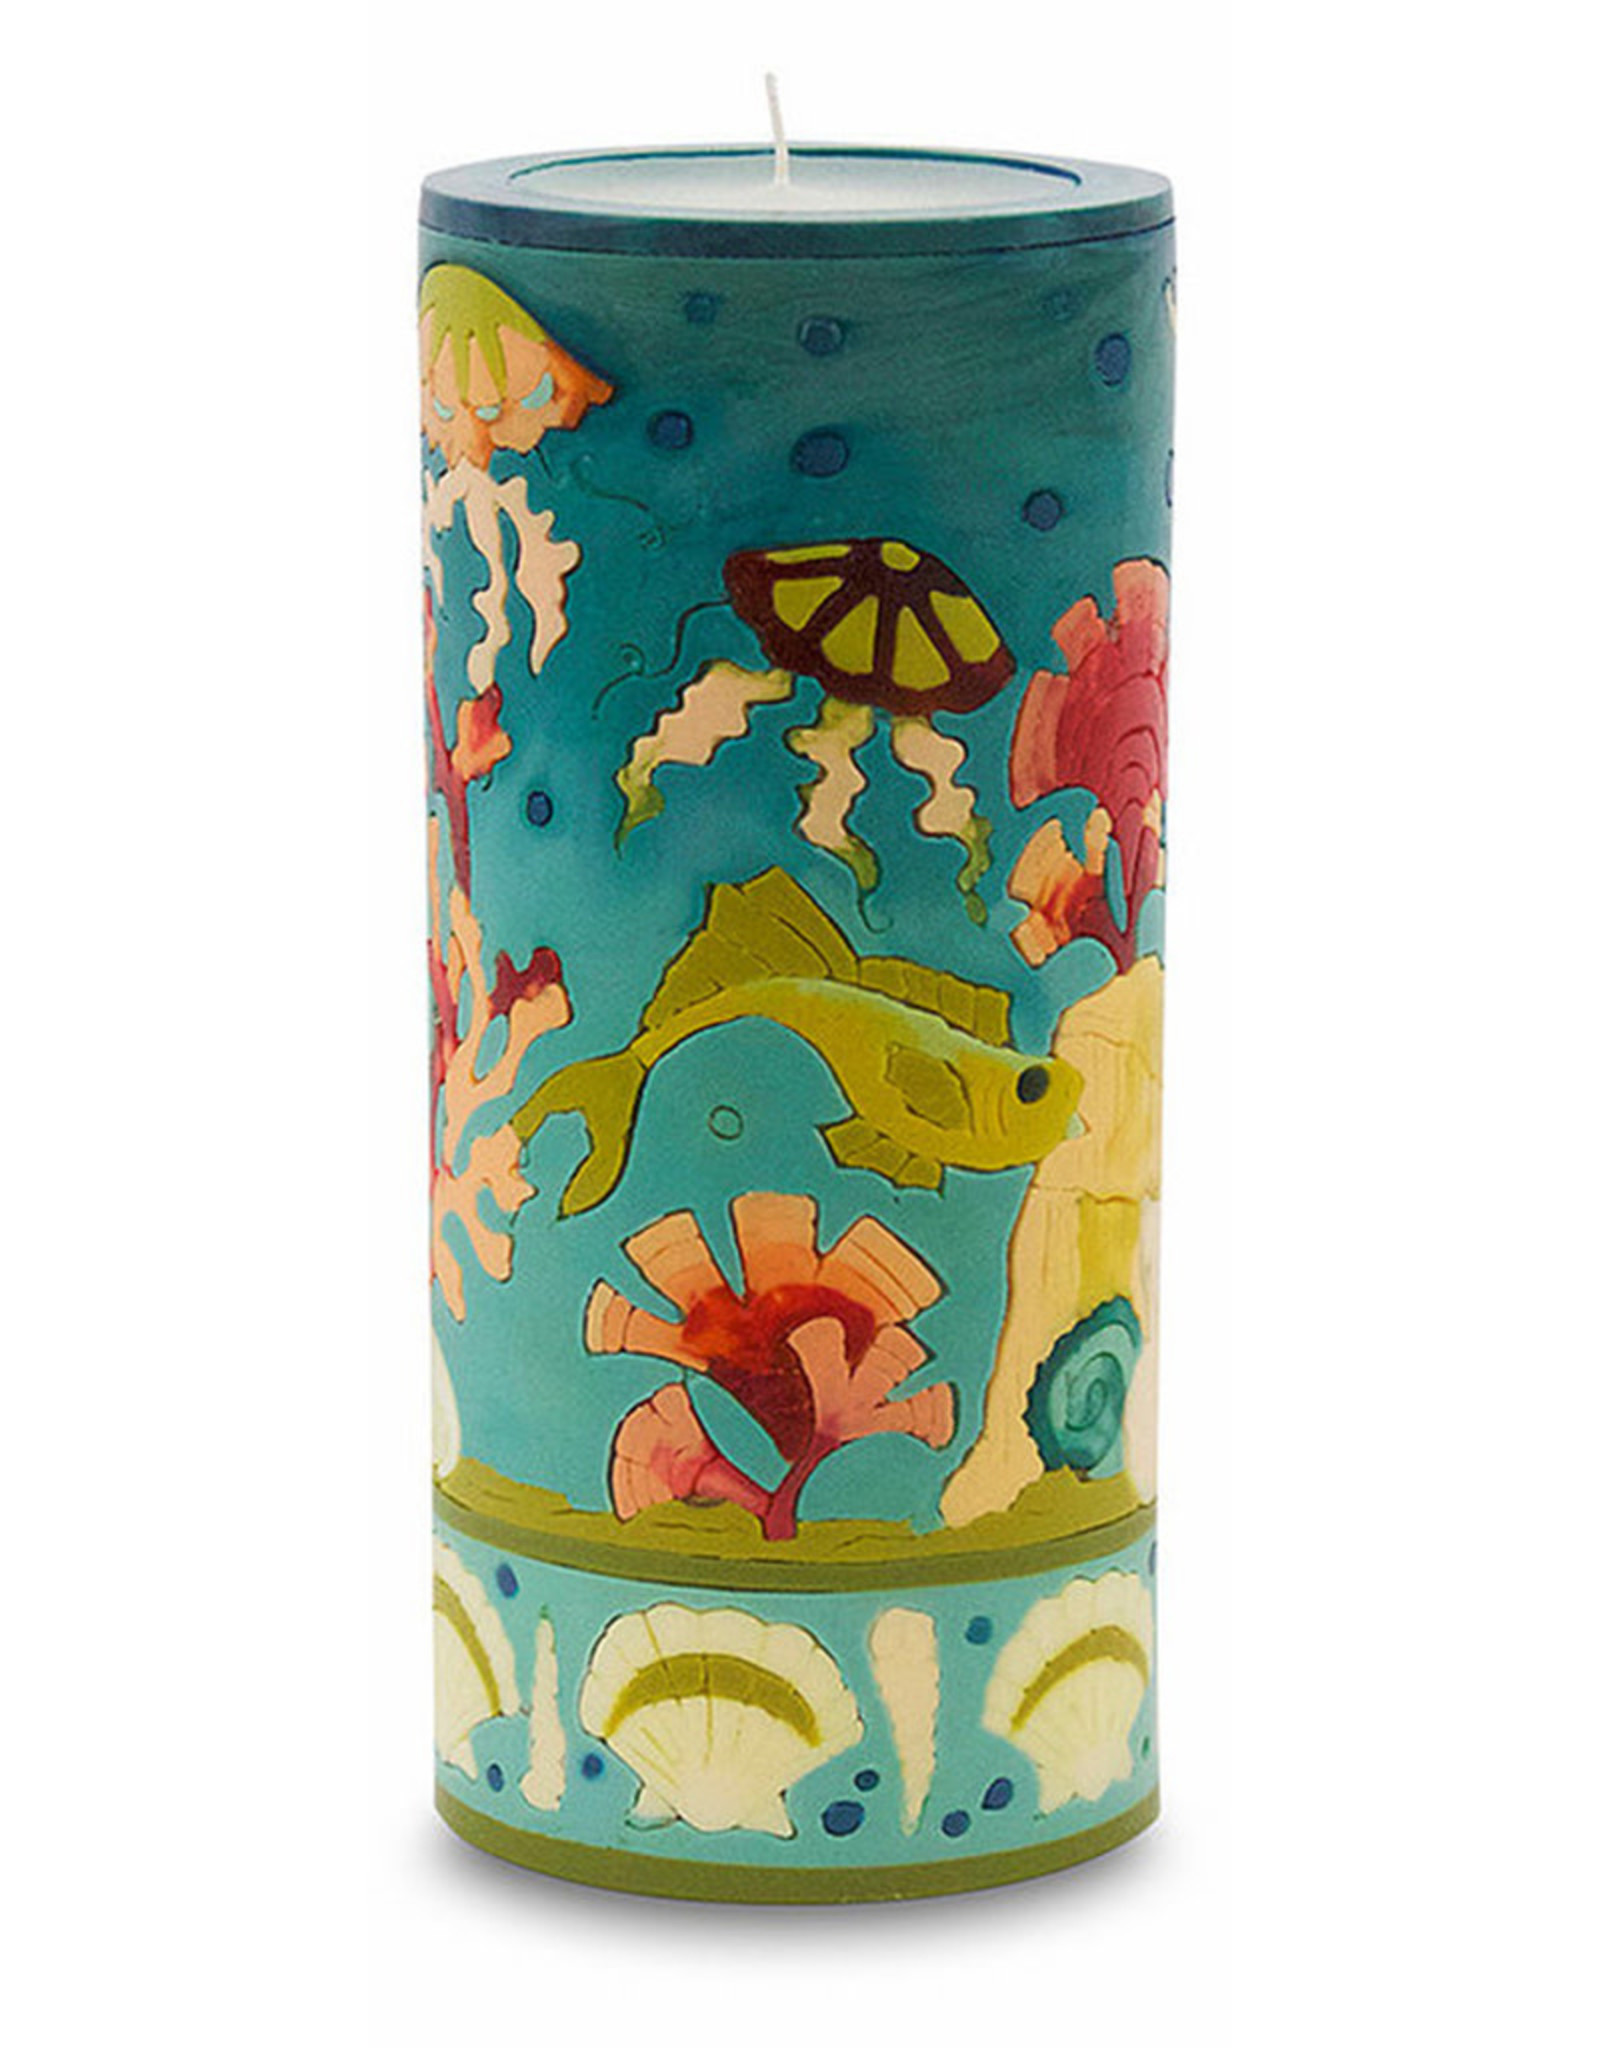 MOON ALLEY LARGE MERMAID CANDLE